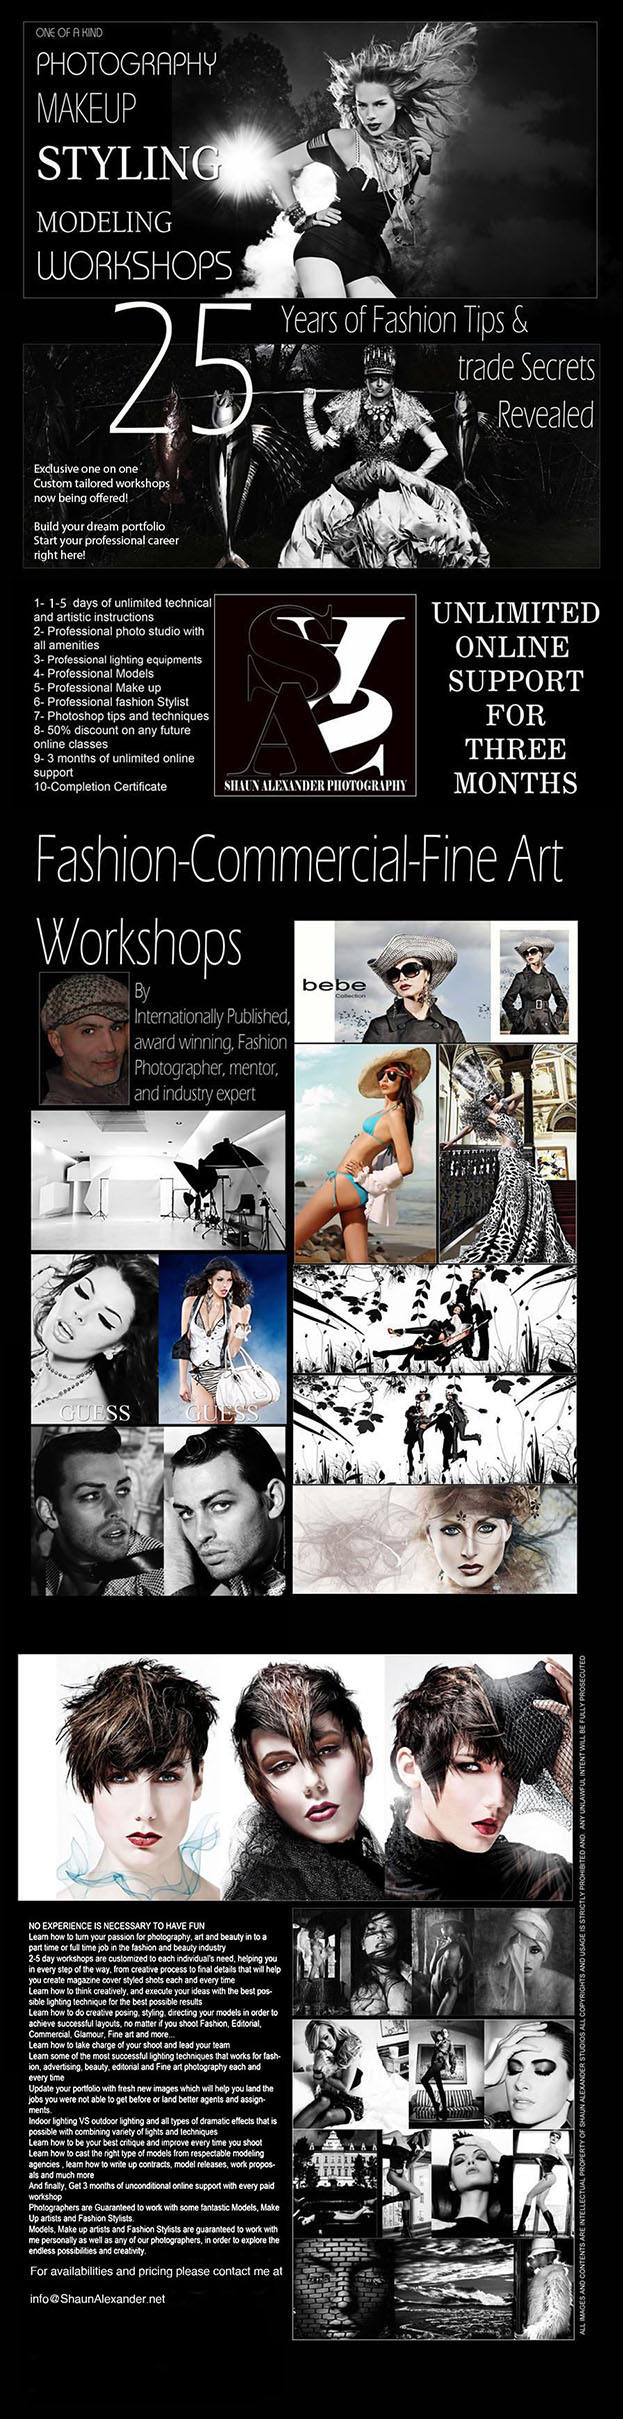 Los Angeles workshops